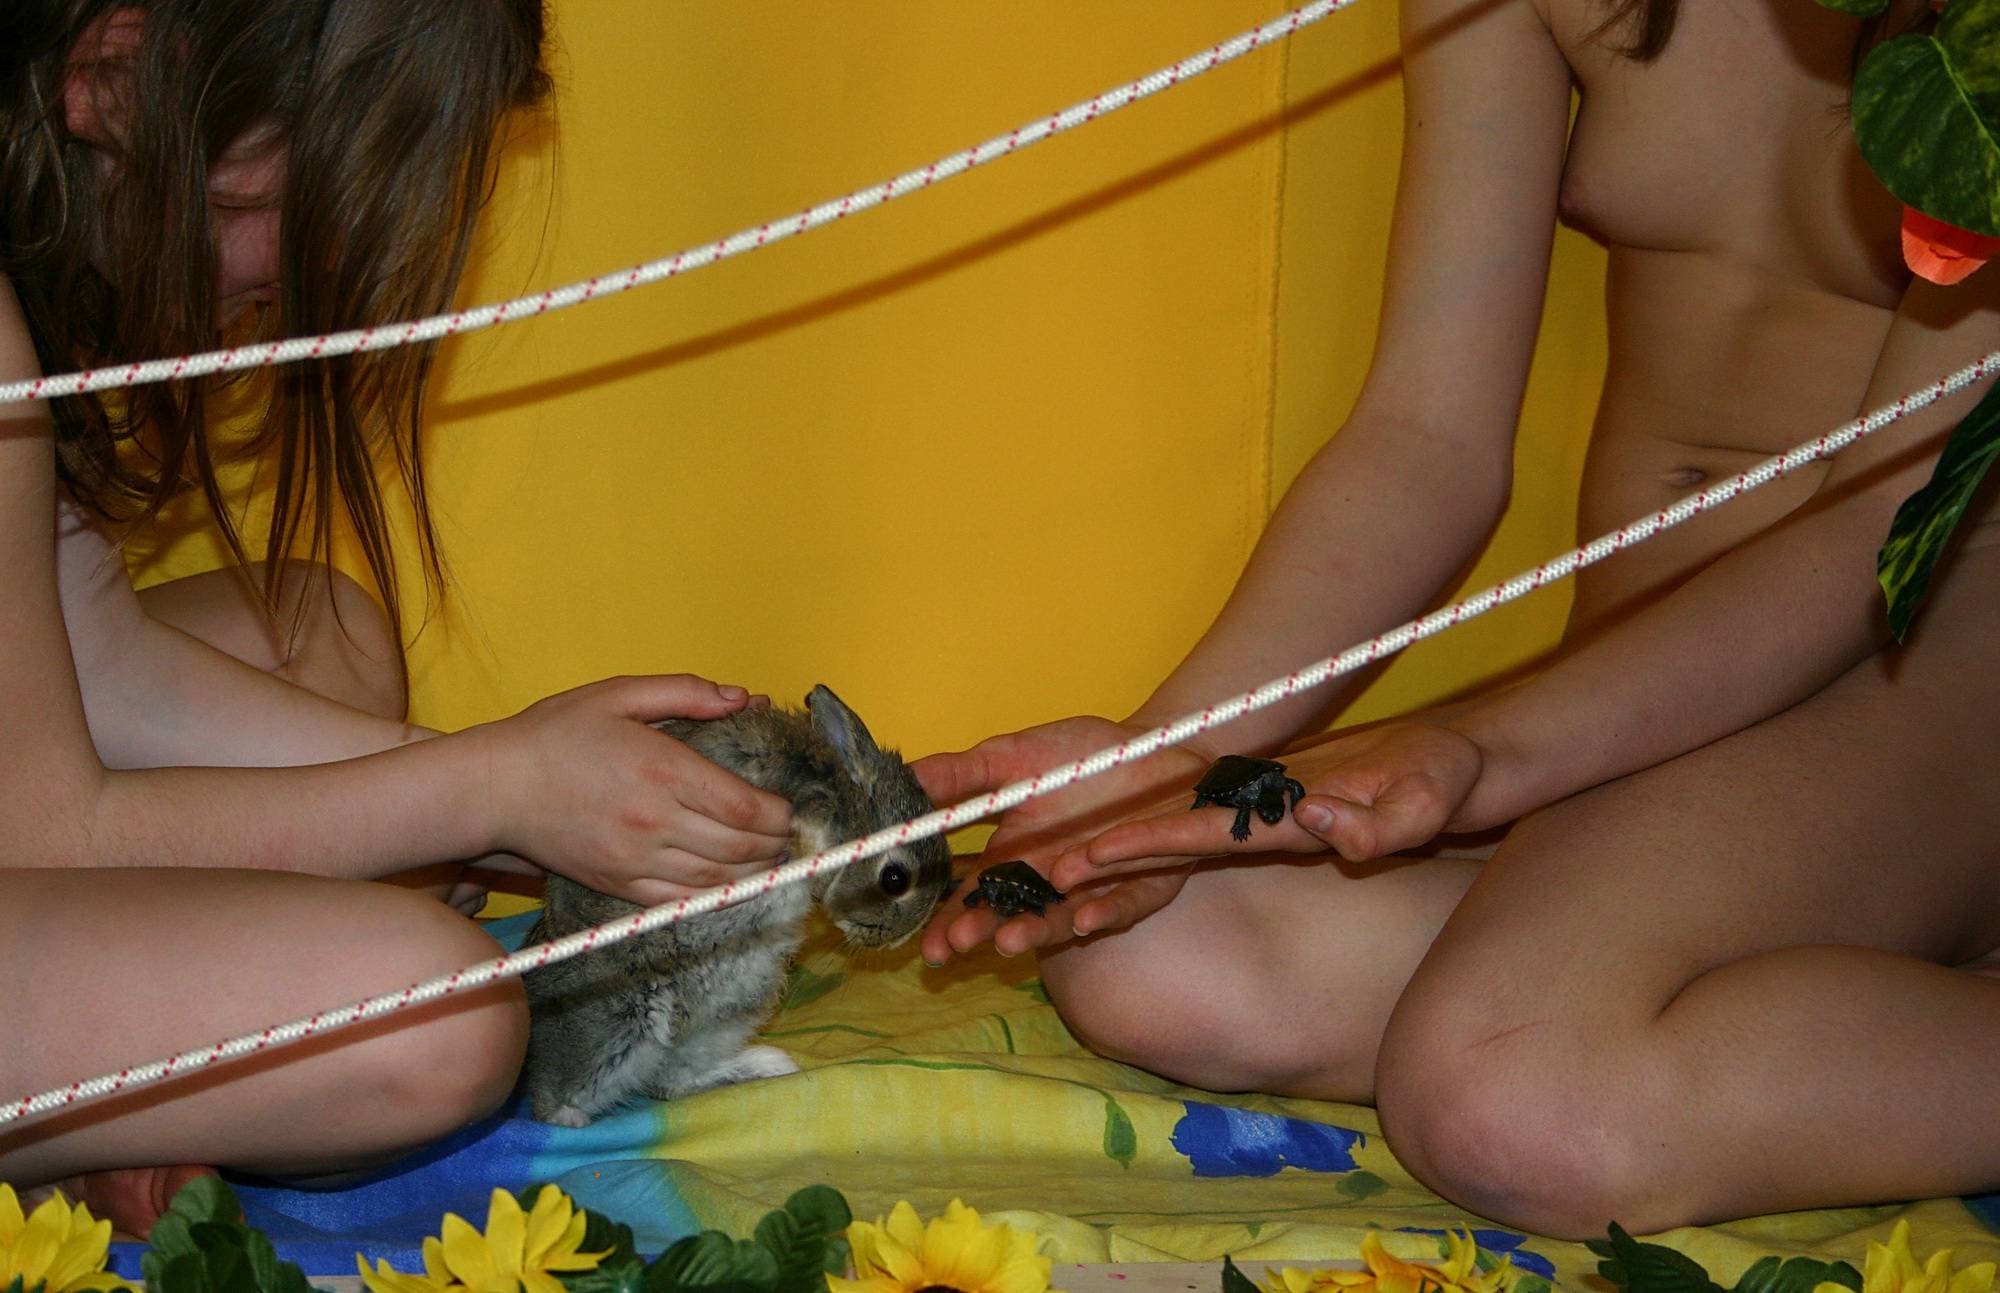 Nudist Pictures In and Out of Spiders Webs - 1